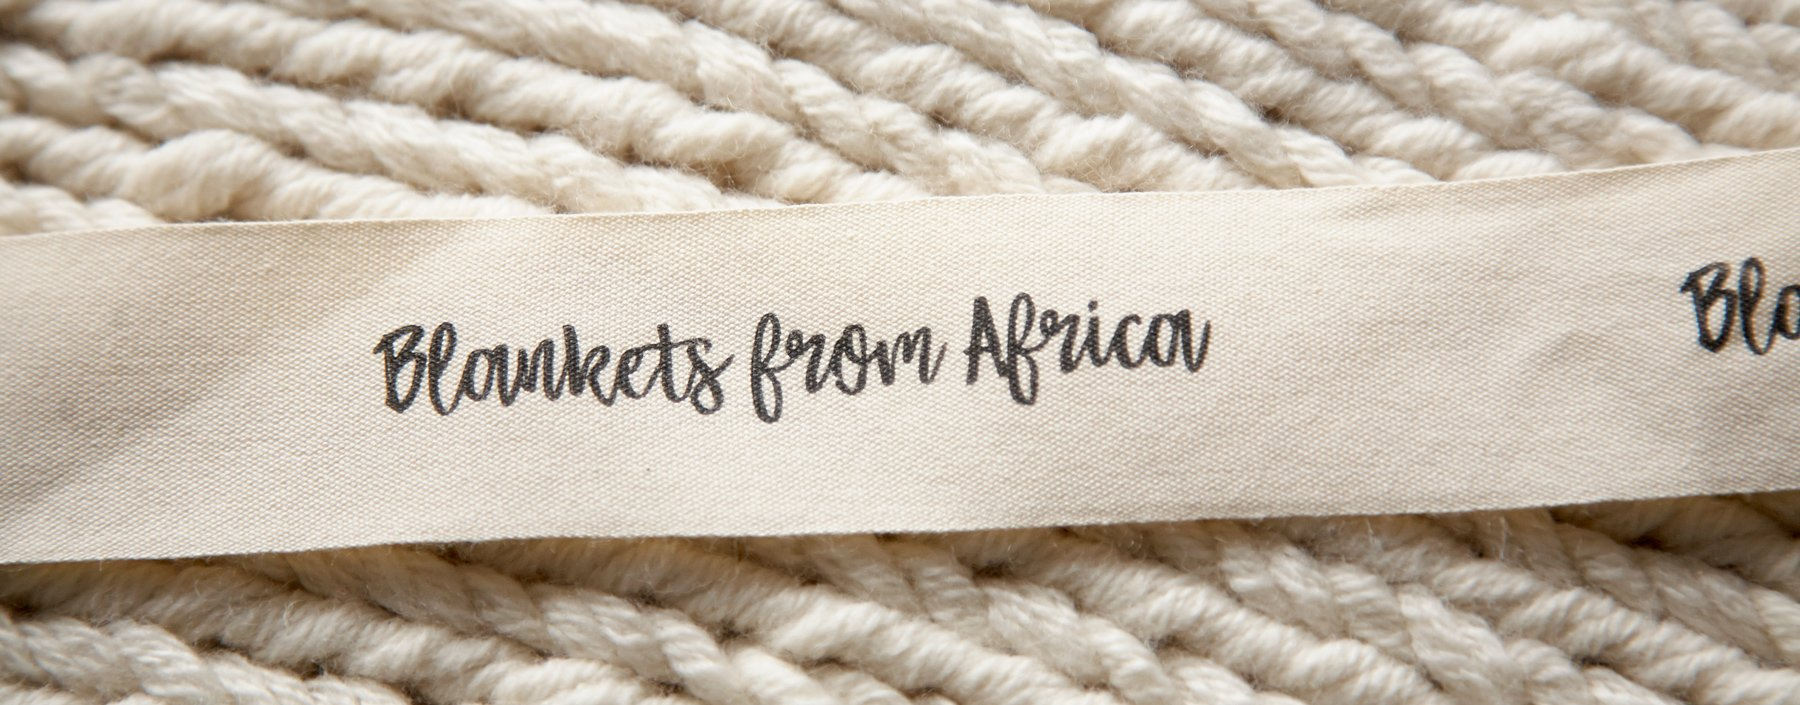 Blankets from Africa label